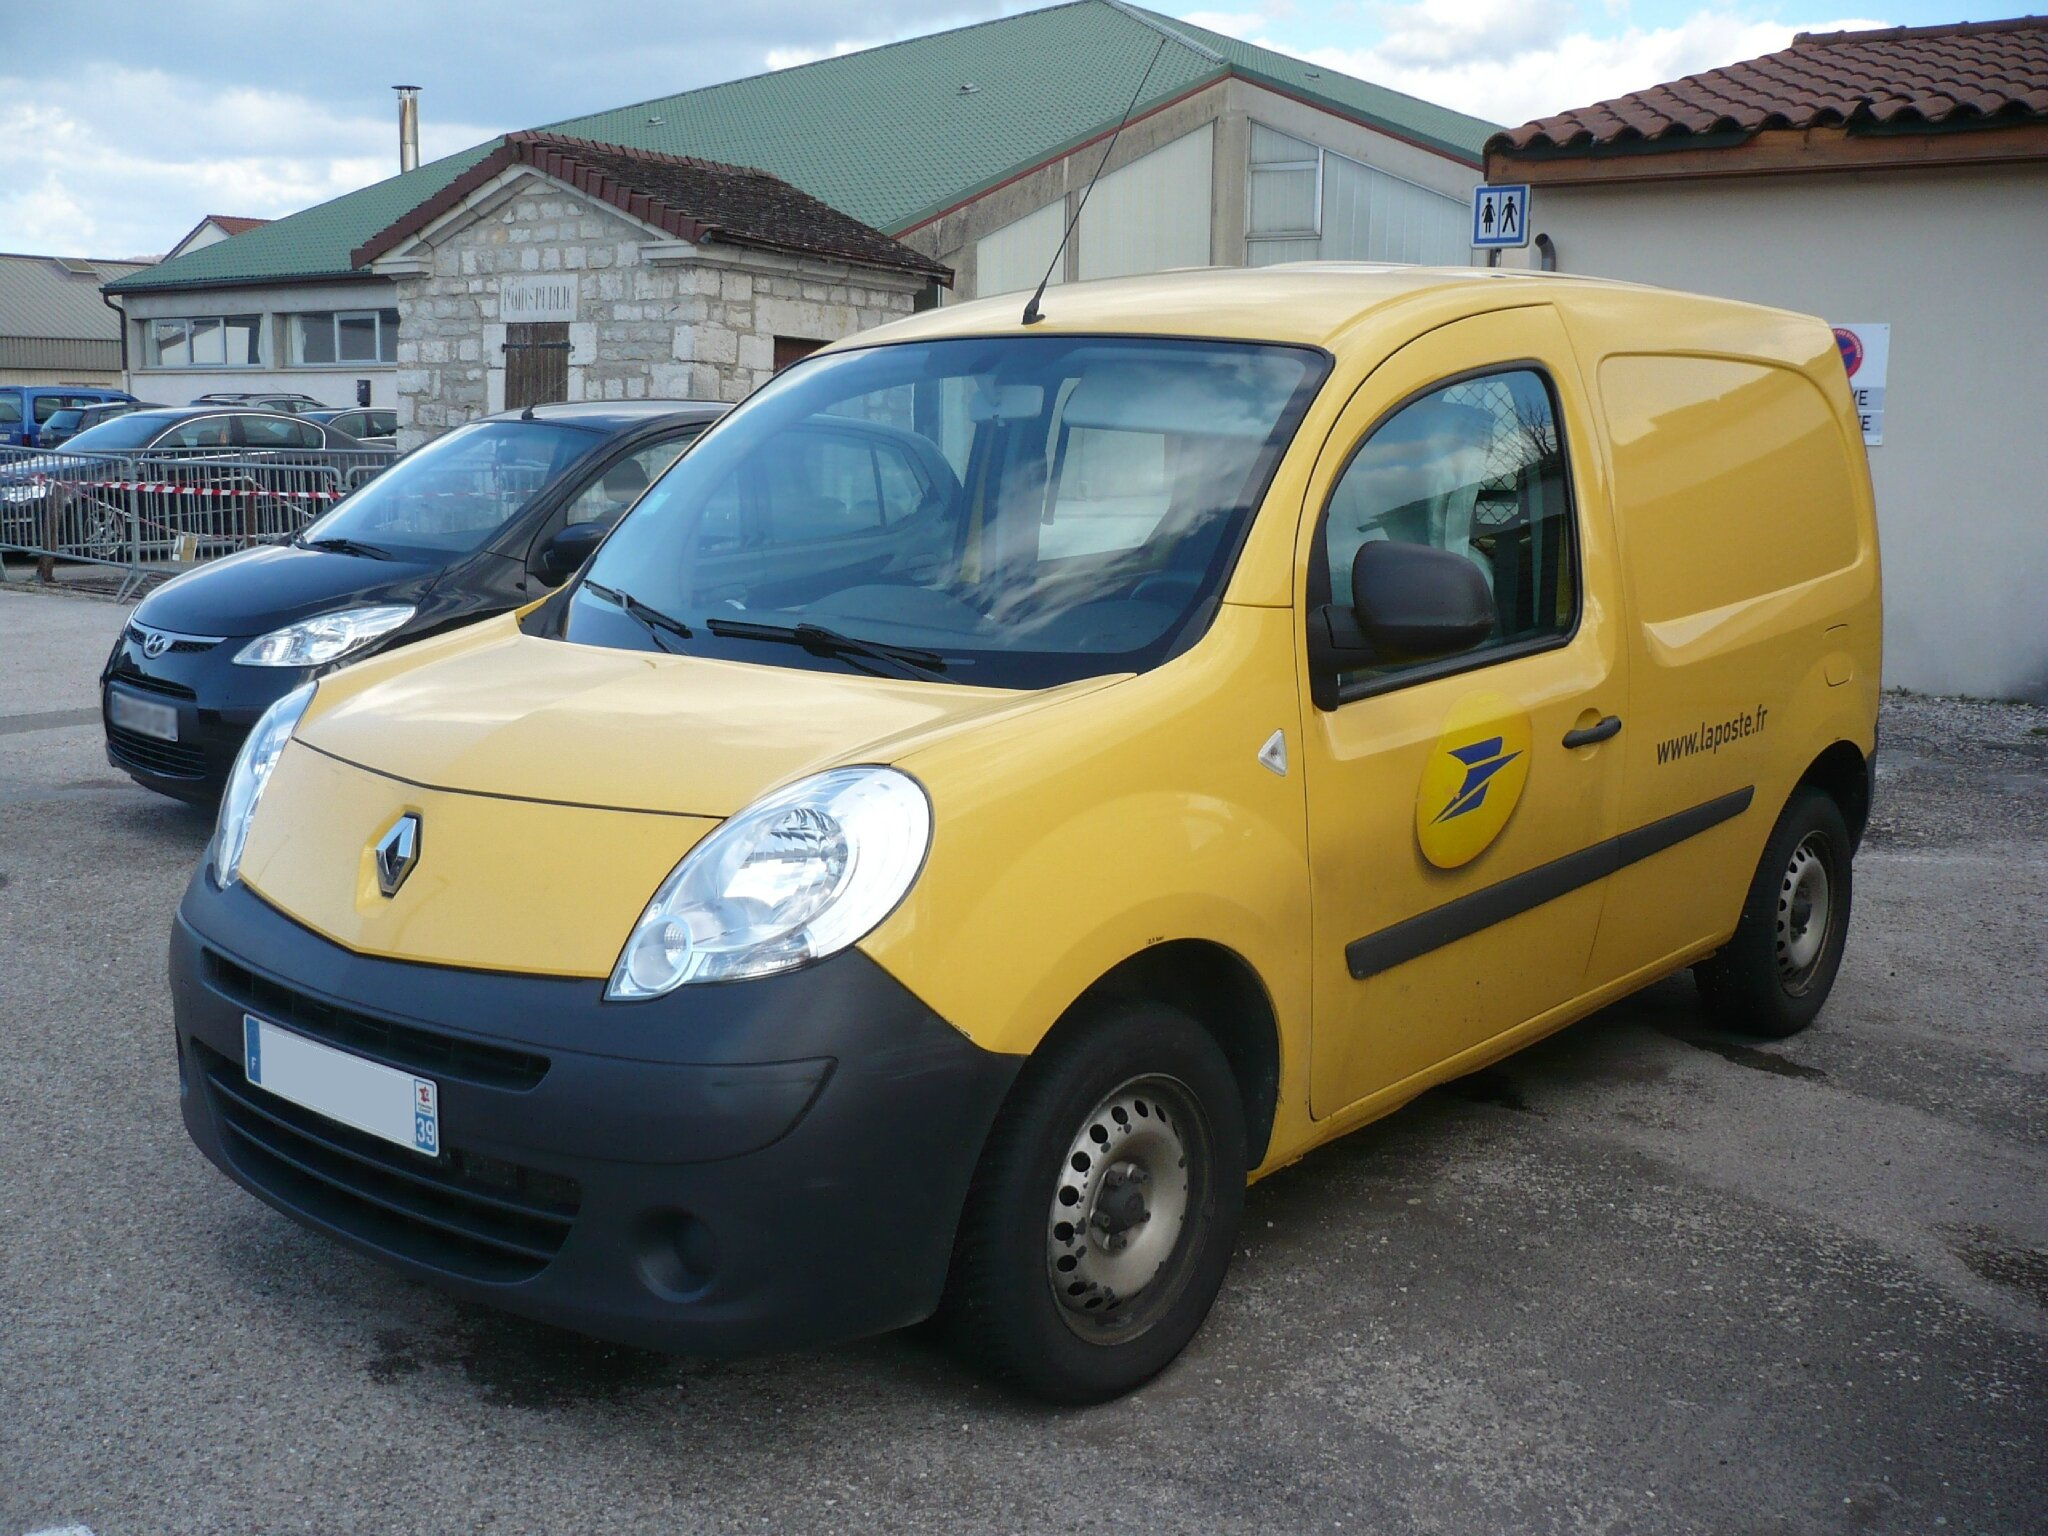 renault tech kangoo ii utilitaire la poste 2012 vroom vroom. Black Bedroom Furniture Sets. Home Design Ideas